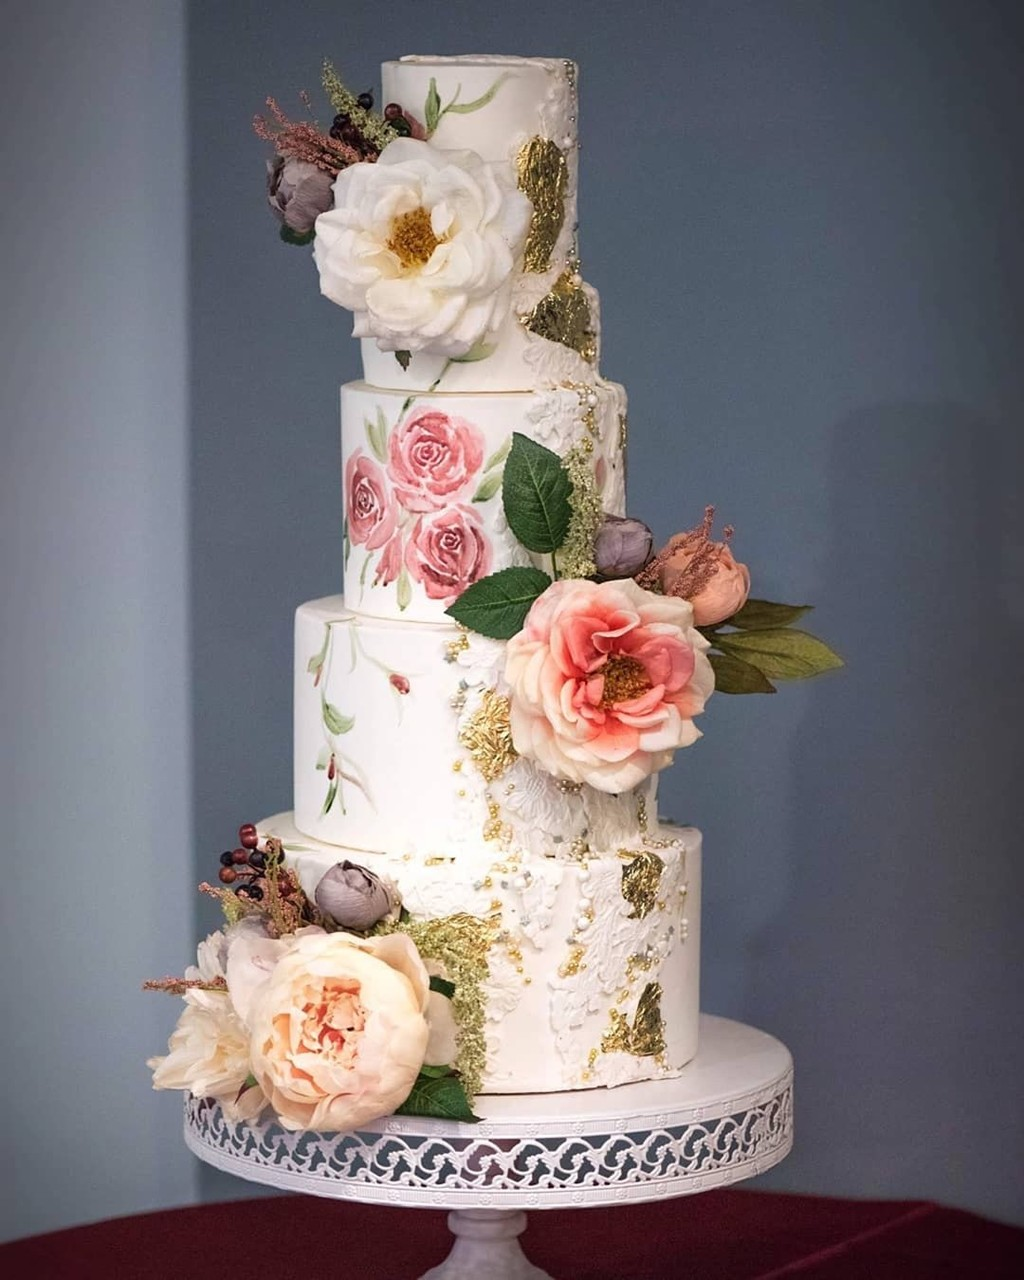 L🌸VE a pretty hand-painted floral wedding cake by @thesugarstream